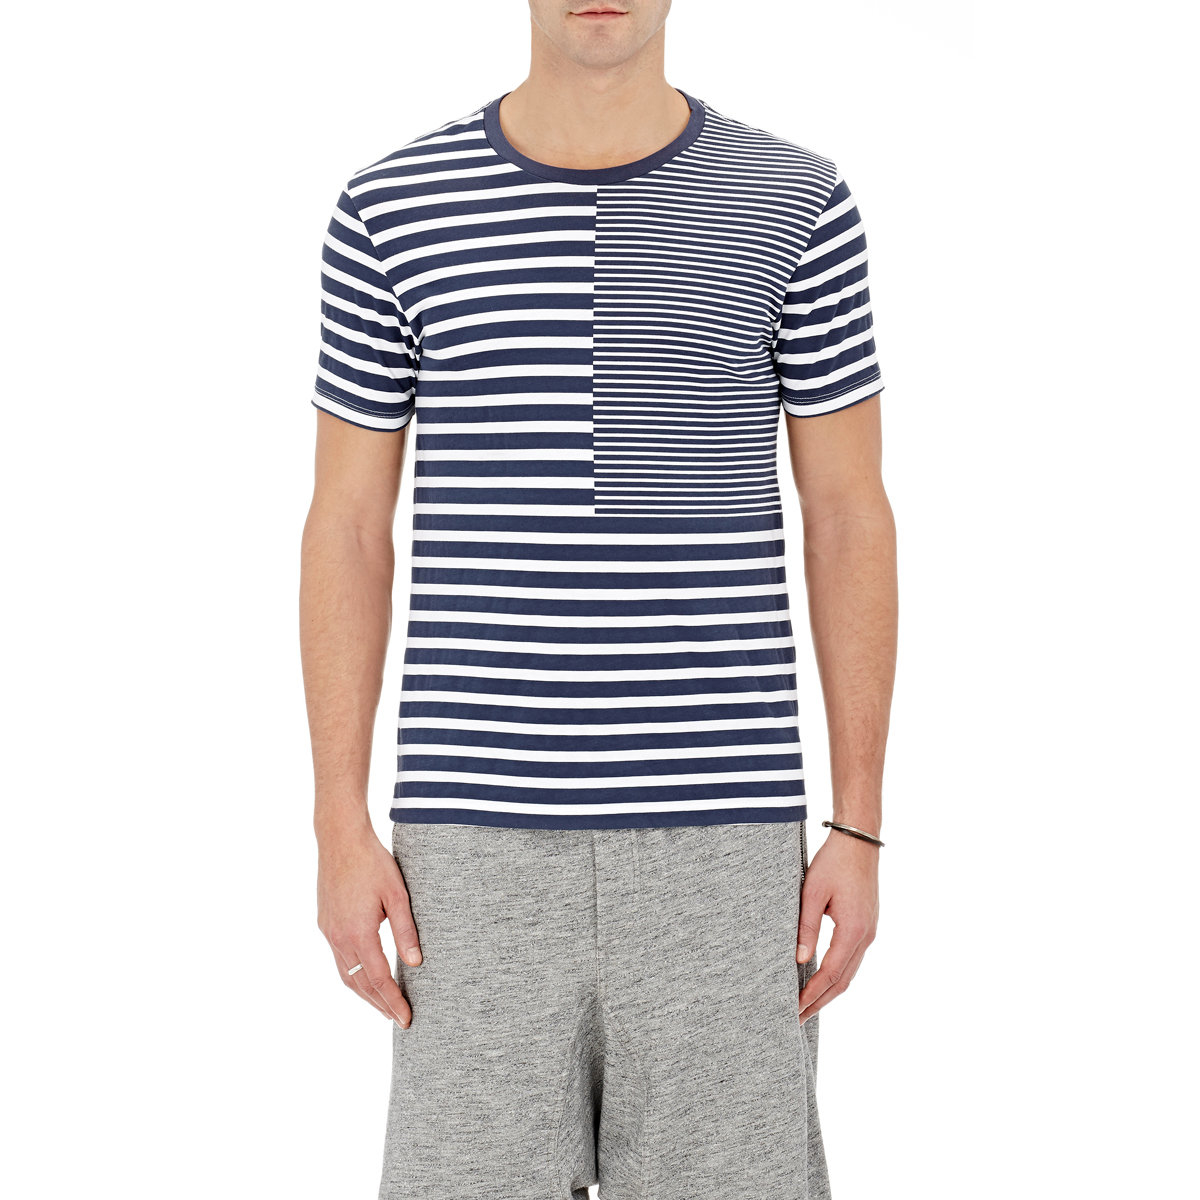 Lyst barneys new york men 39 s mixed stripe t shirt in blue for New york and company dress shirts